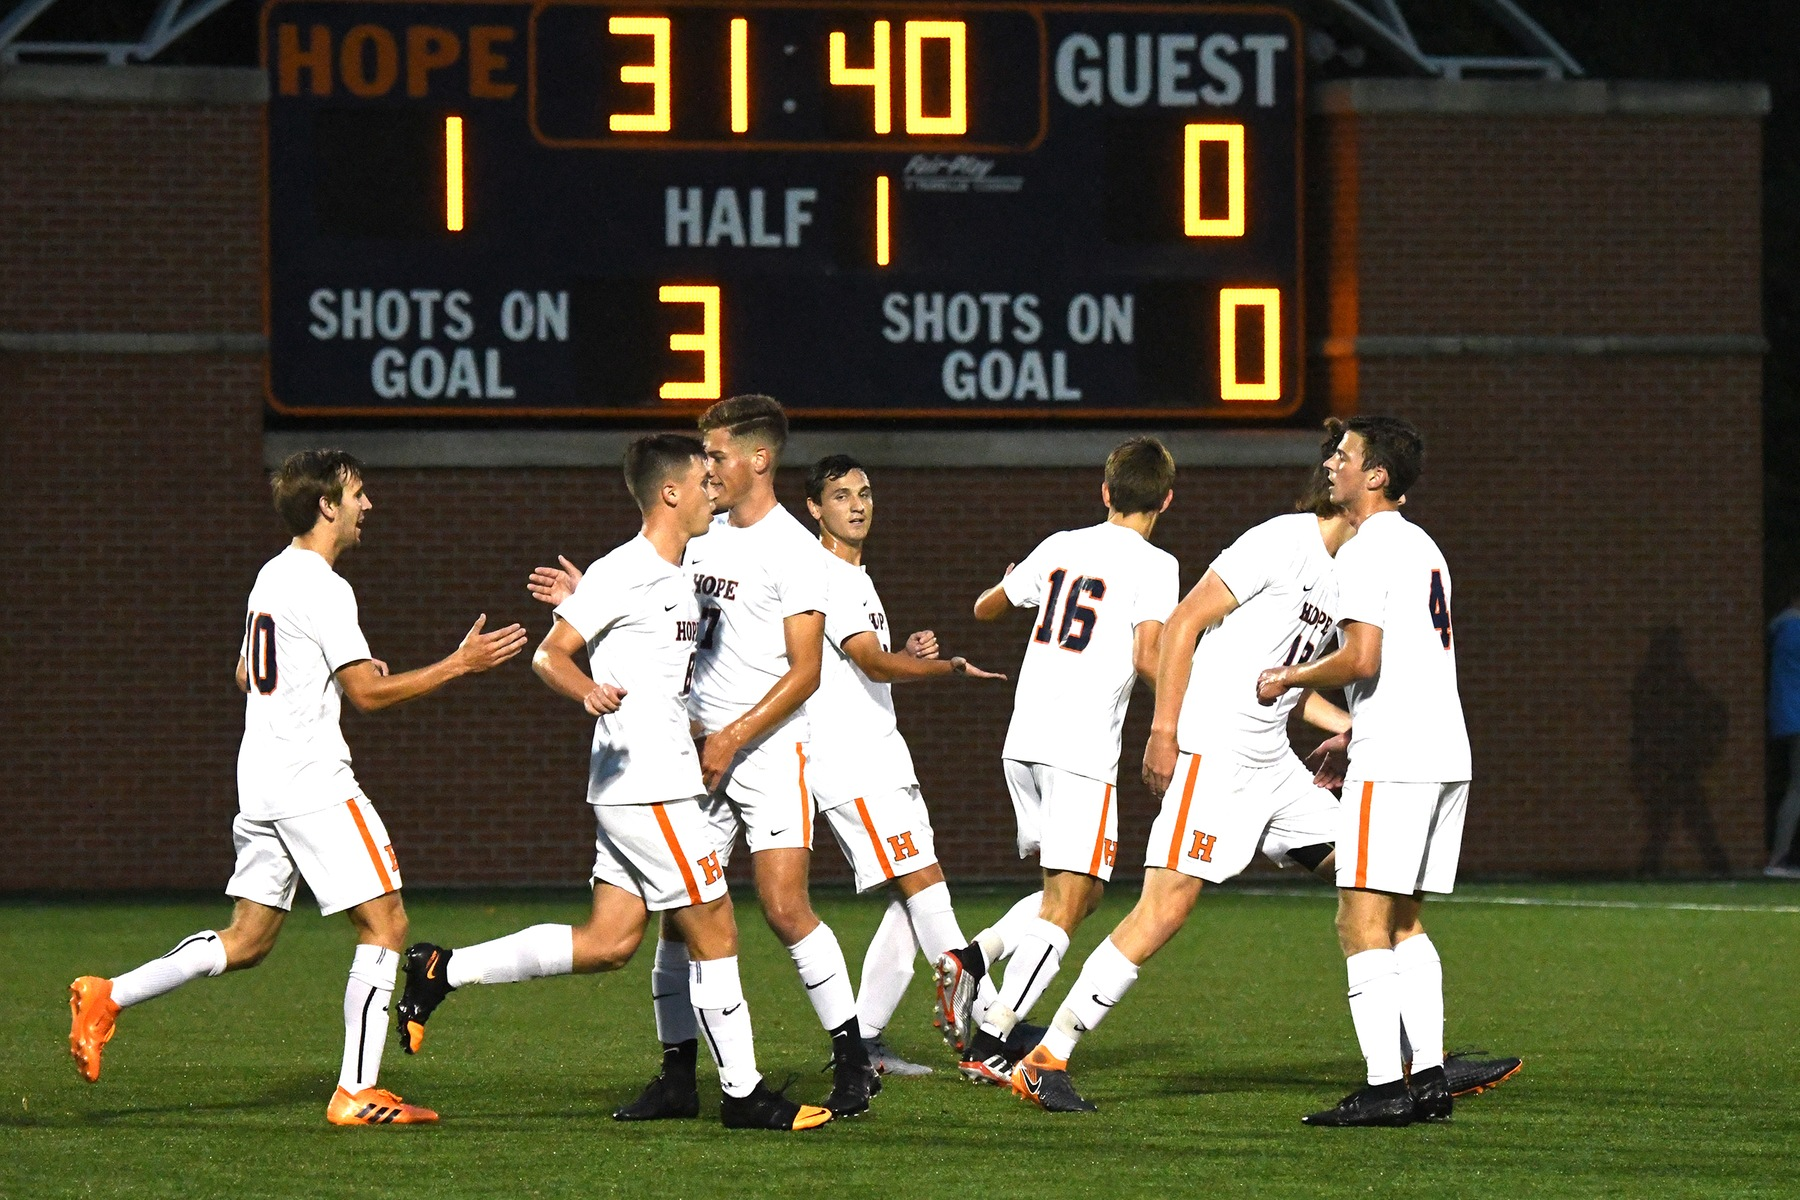 Hope soccer players celebrate a goal